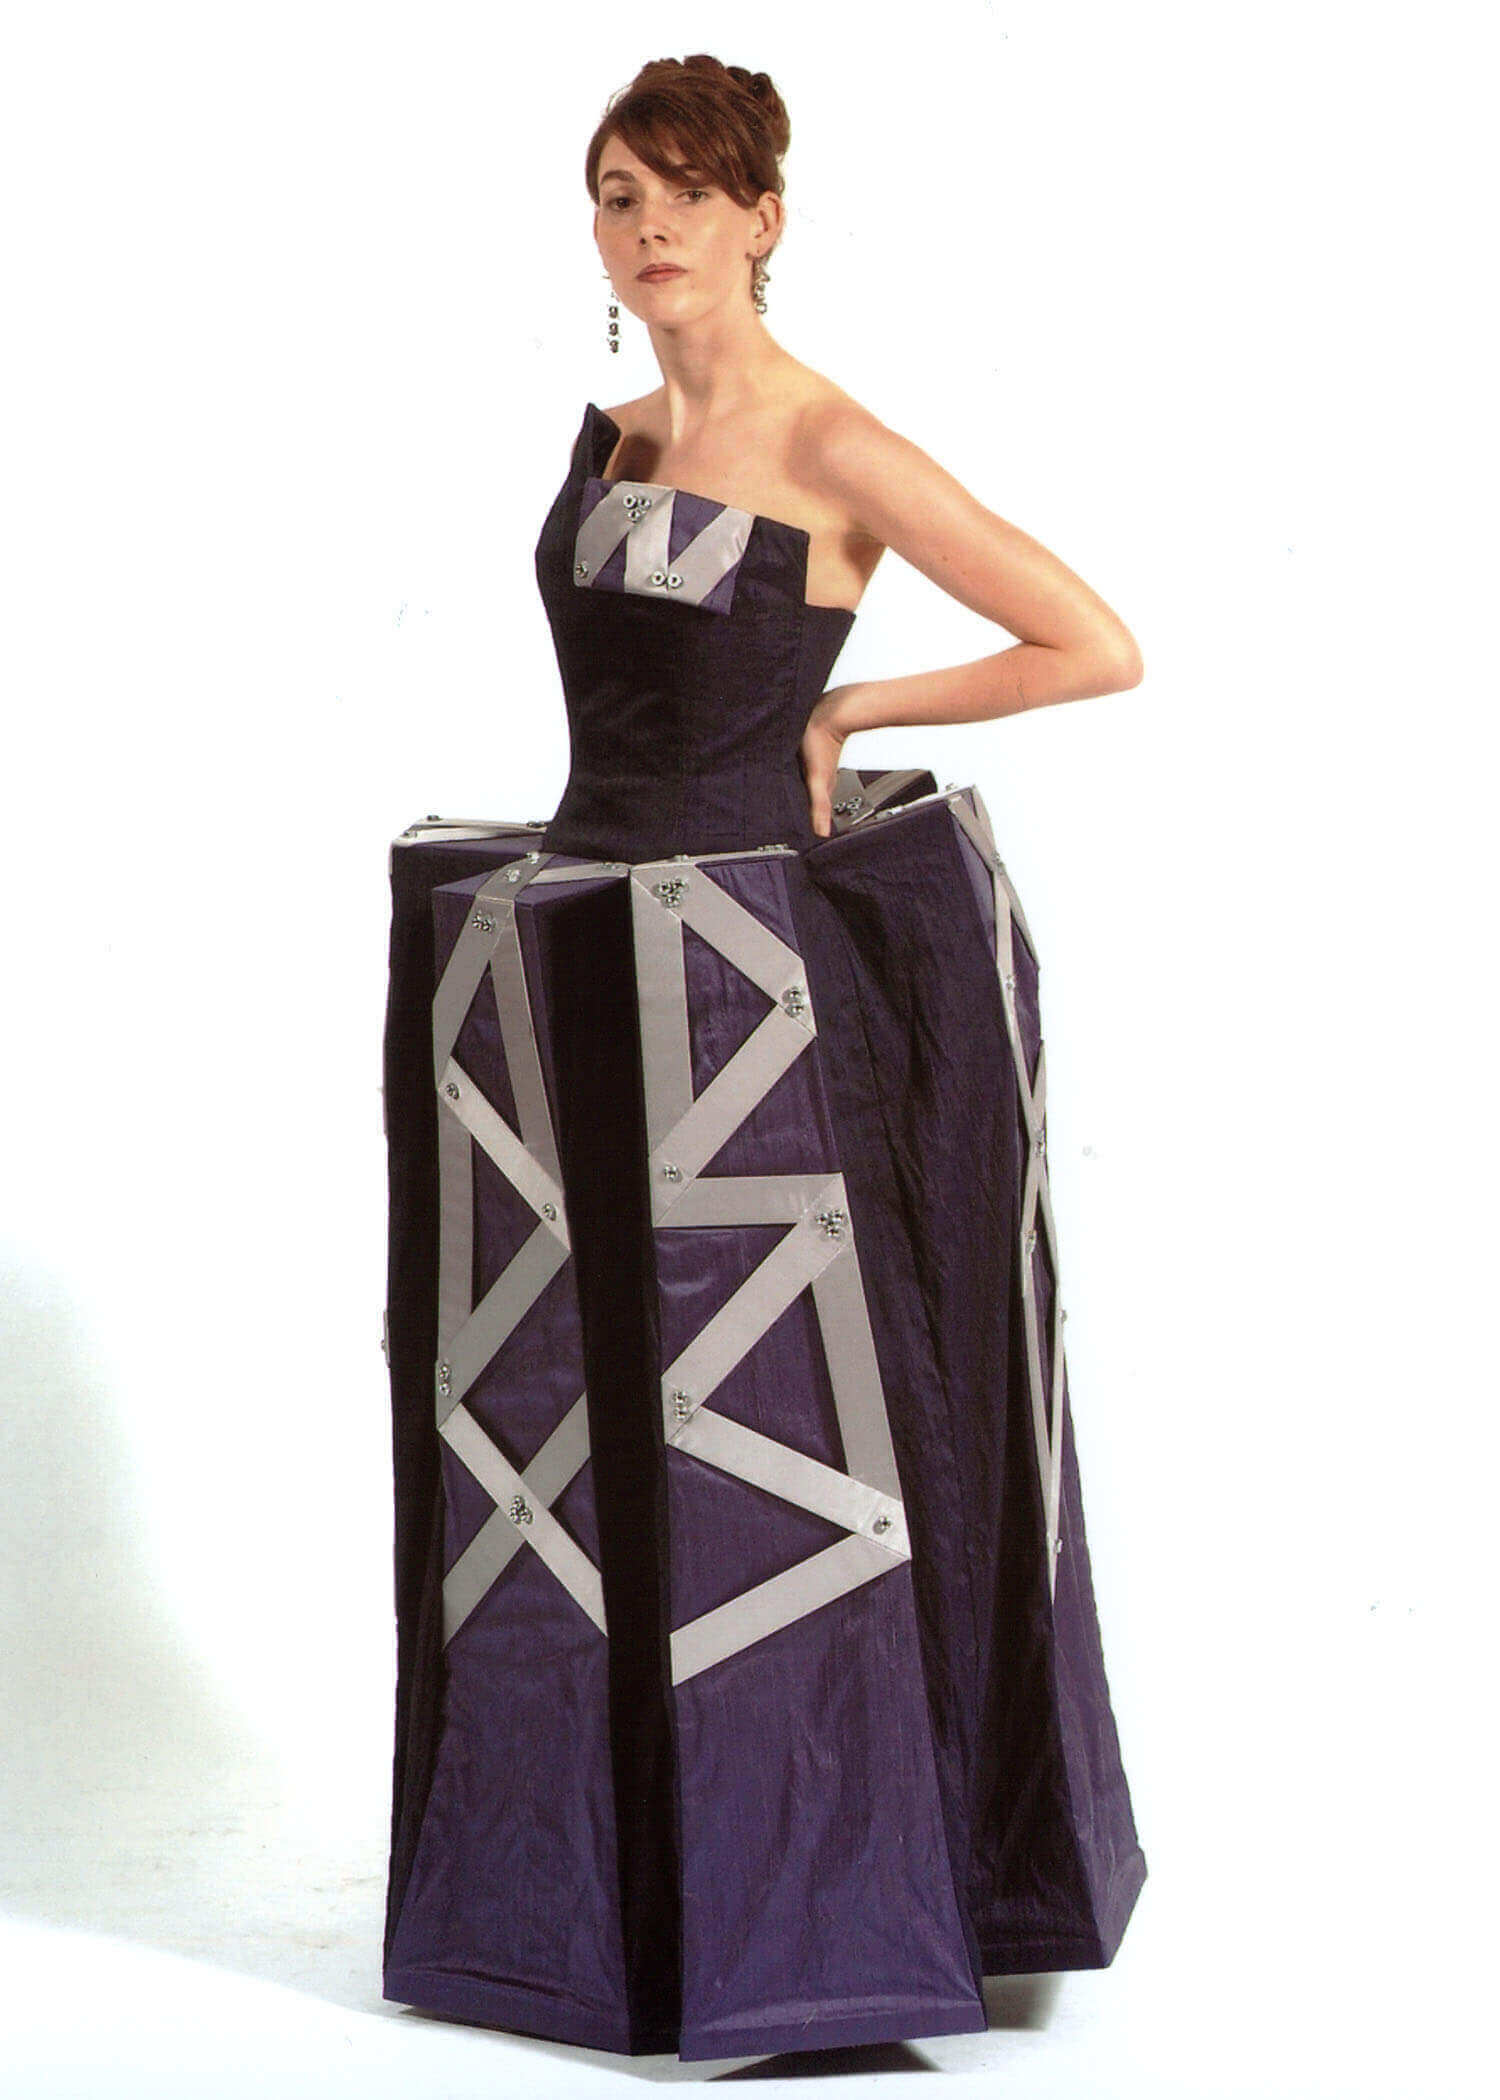 Wearable Art by Rebecca Wendlandt: Structural Elegance